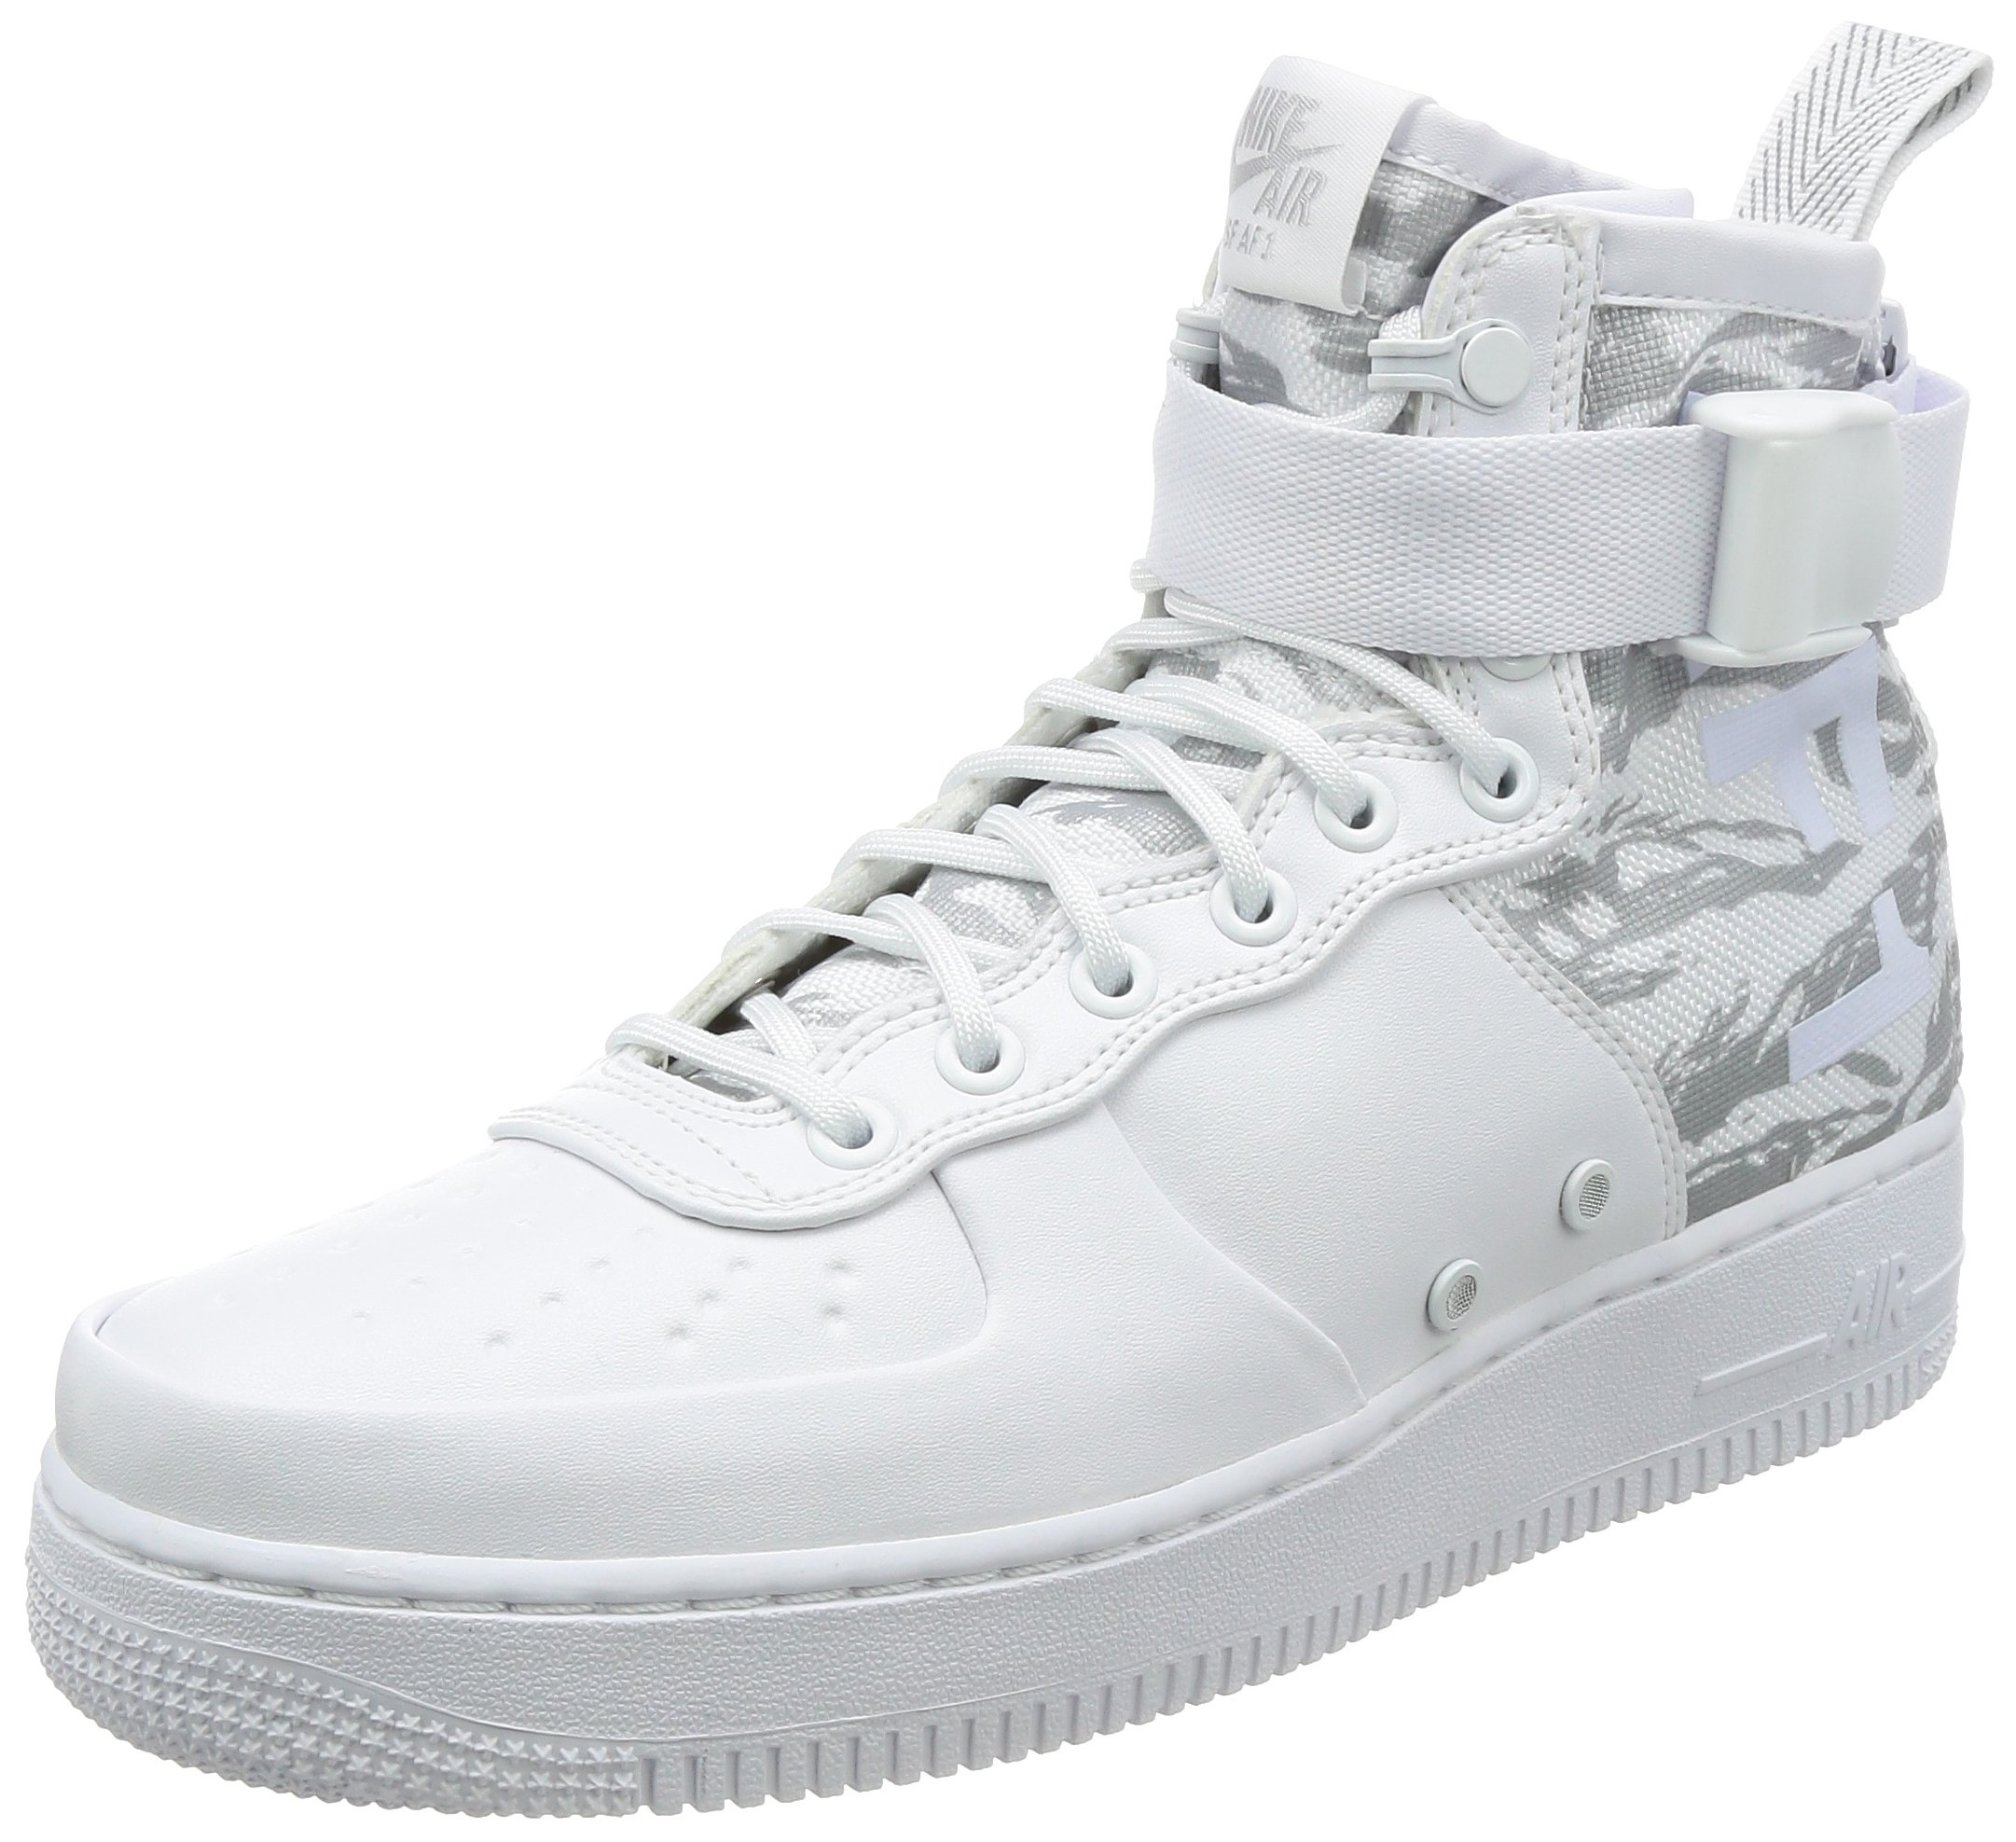 Nike Mens SF Air Force 1 Winter Mid Premium Shoes White/White AA1129-100 Size 11.5